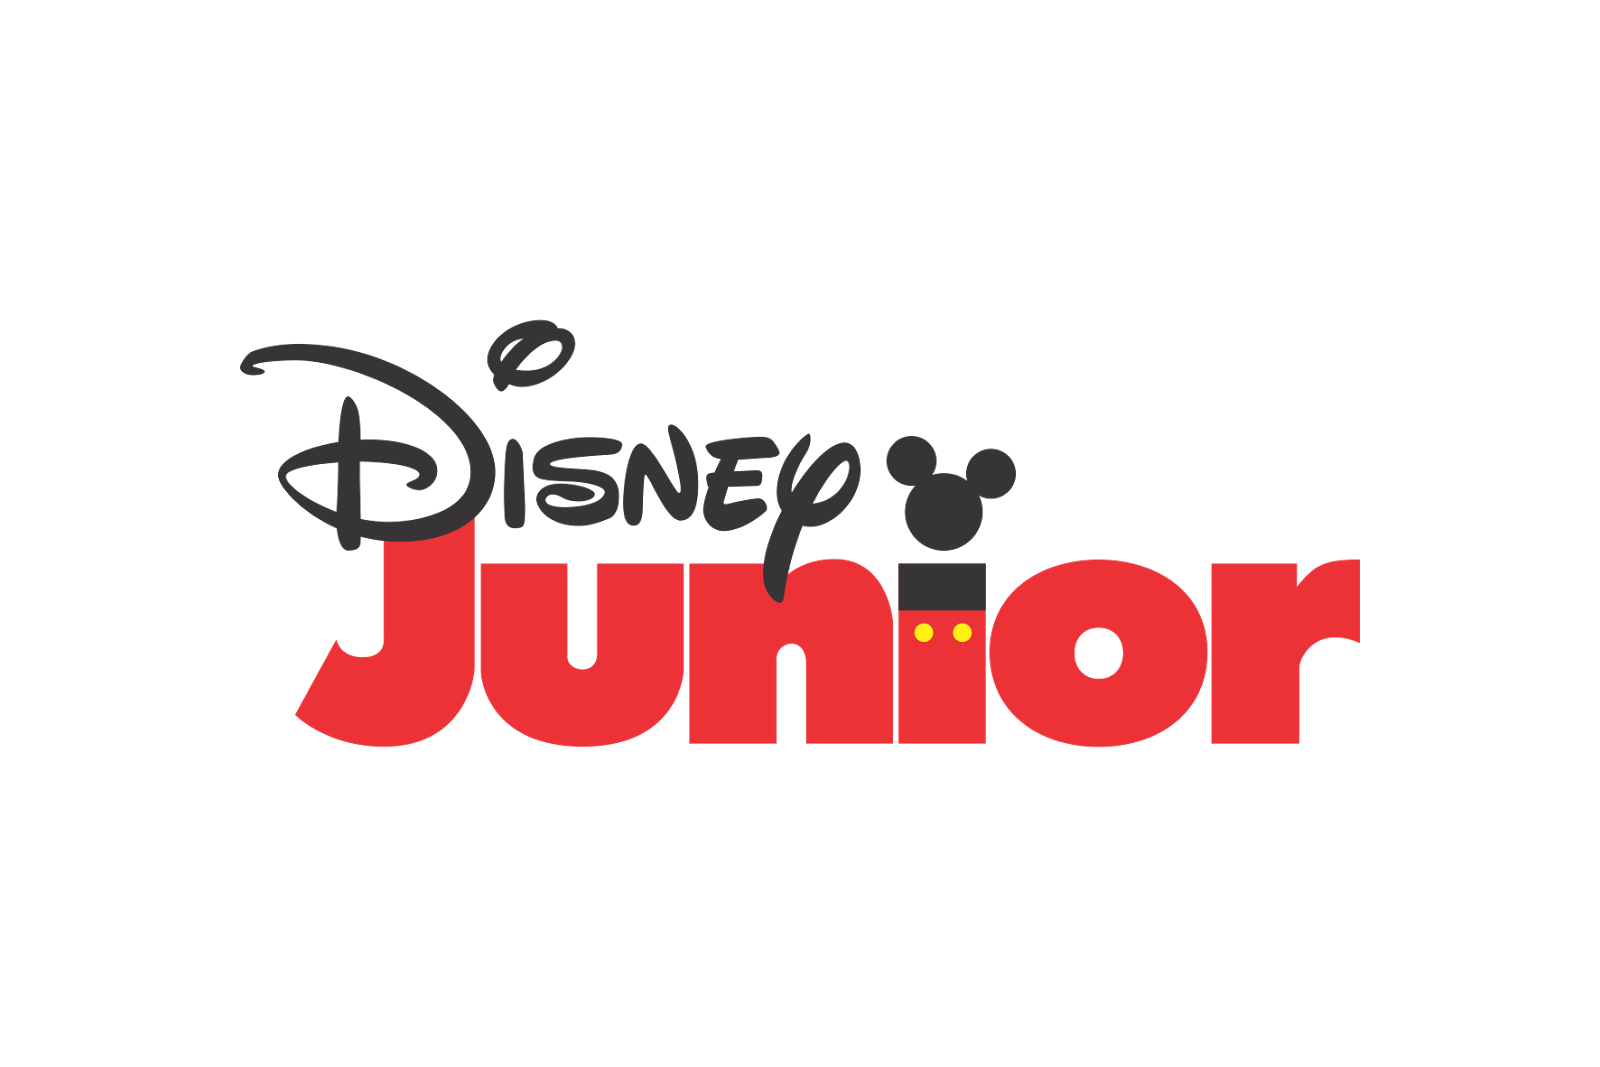 Disney junior logo png. Logos